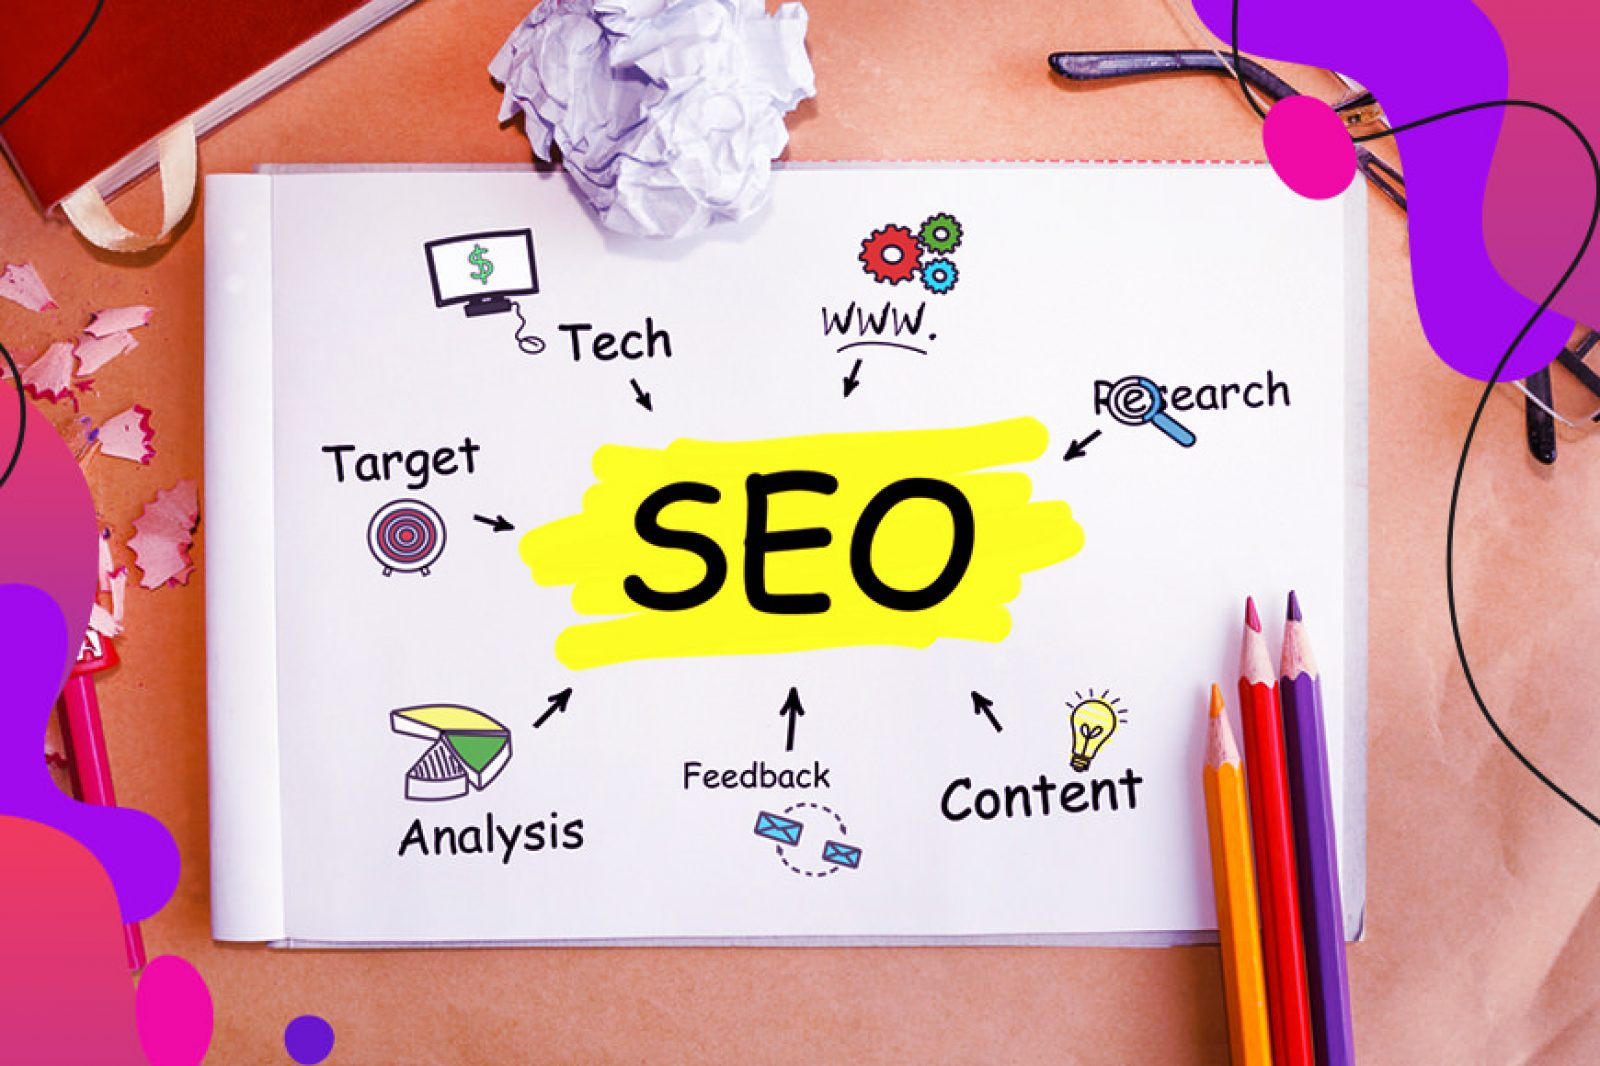 5 Future SEO Trends to Watch Out For